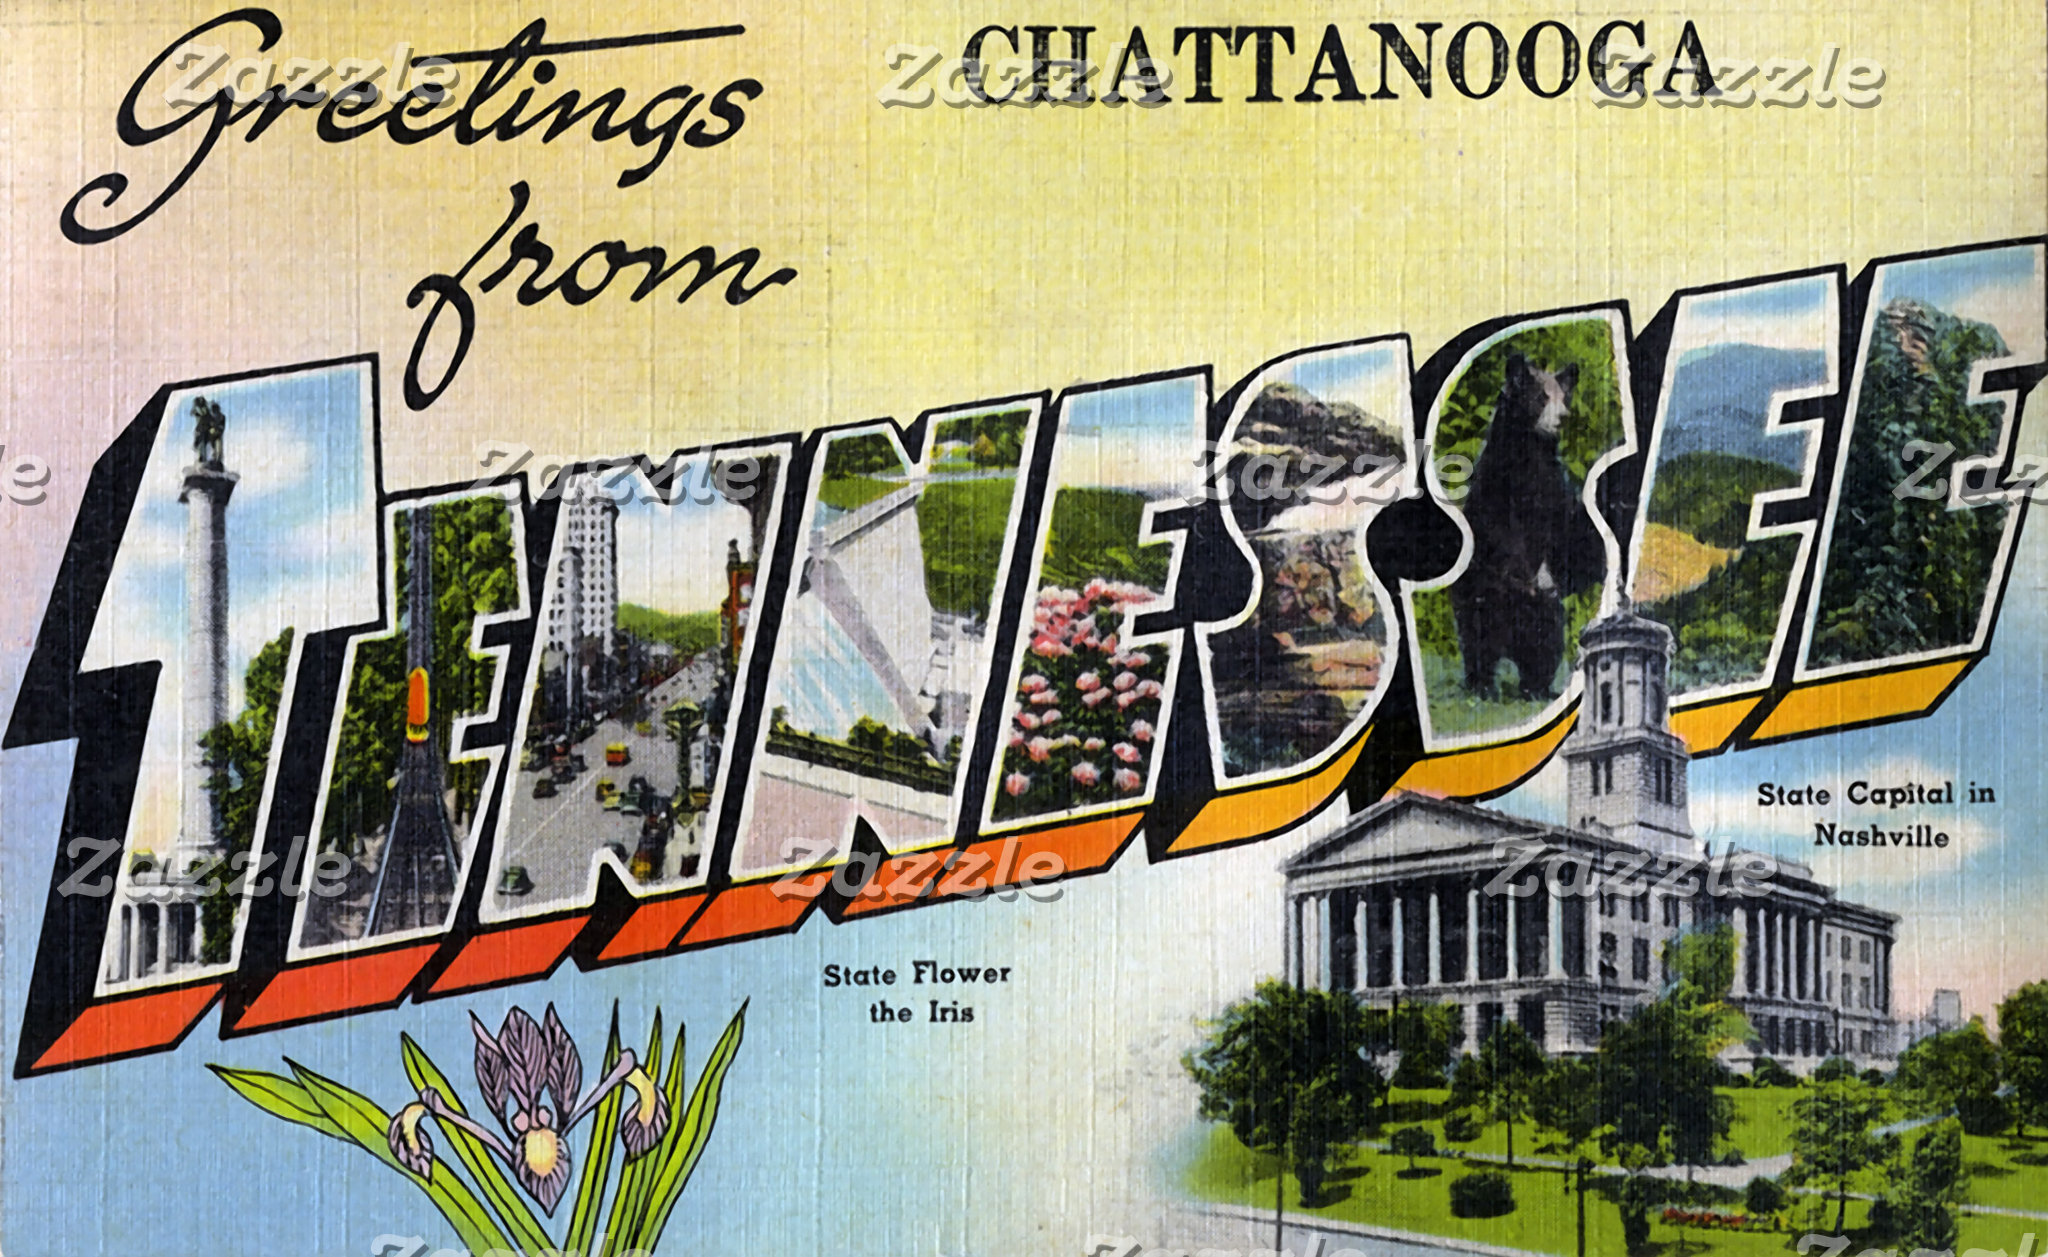 Greetings from Chattanooga Tennesee